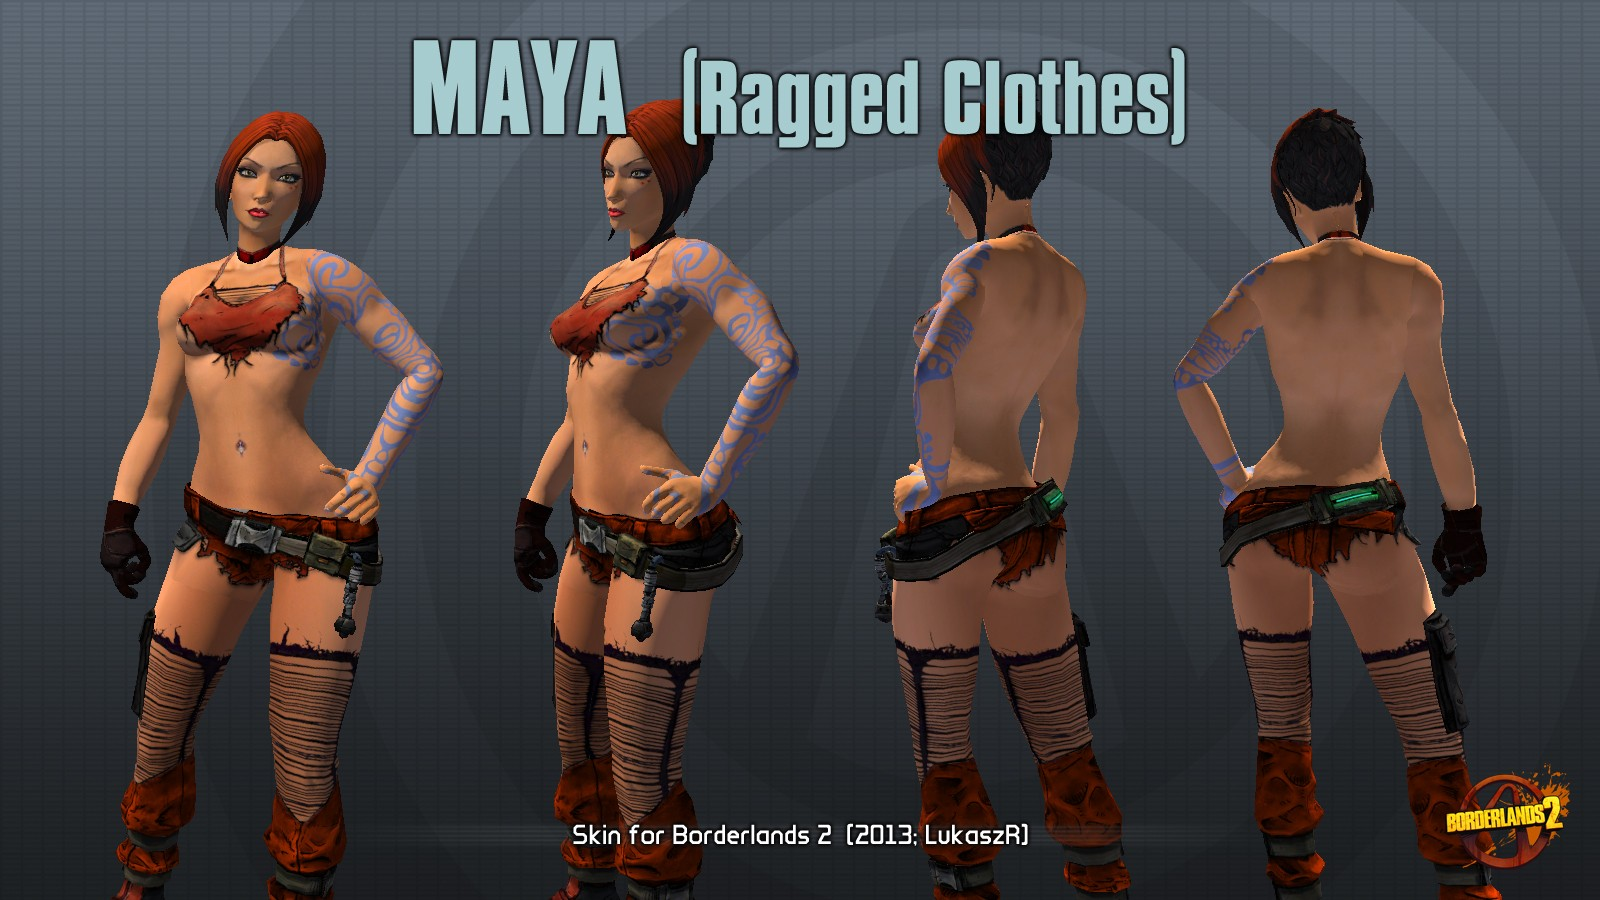 Borderlands 2 sexy maya mod erotic comics